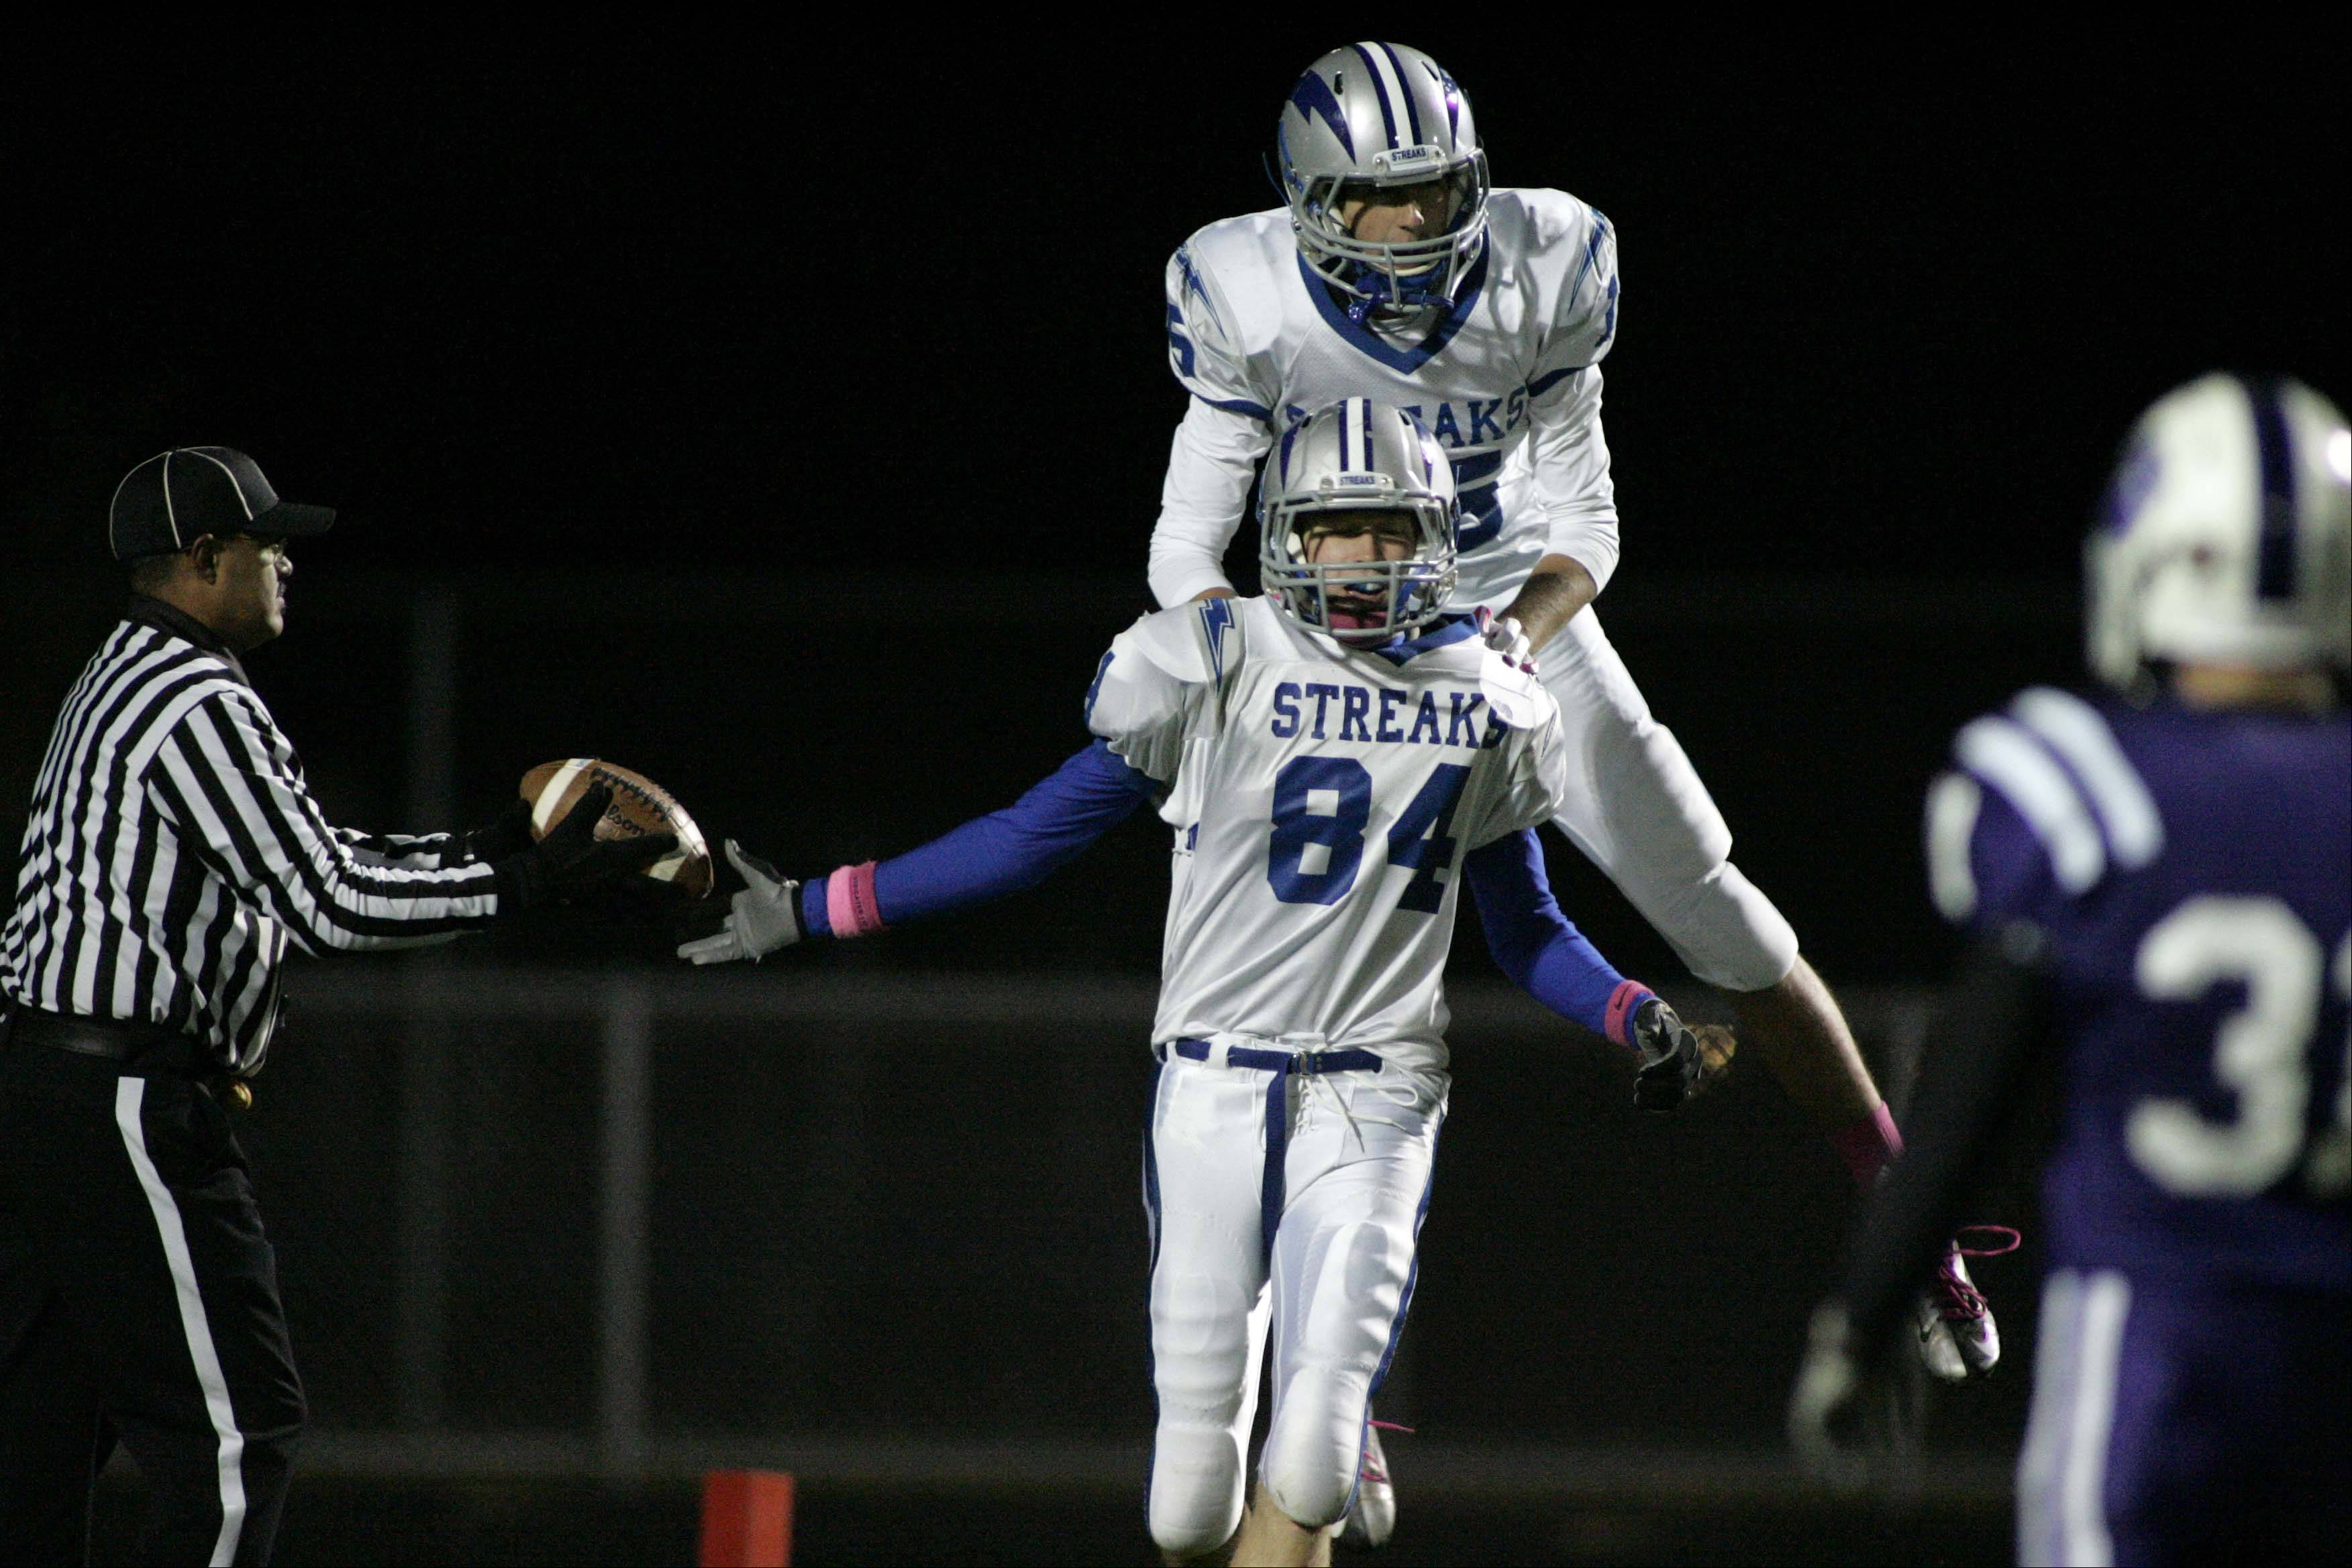 Woodstock's Matthew Swedberg is greeted by Mitch Kohley after a touchdown.